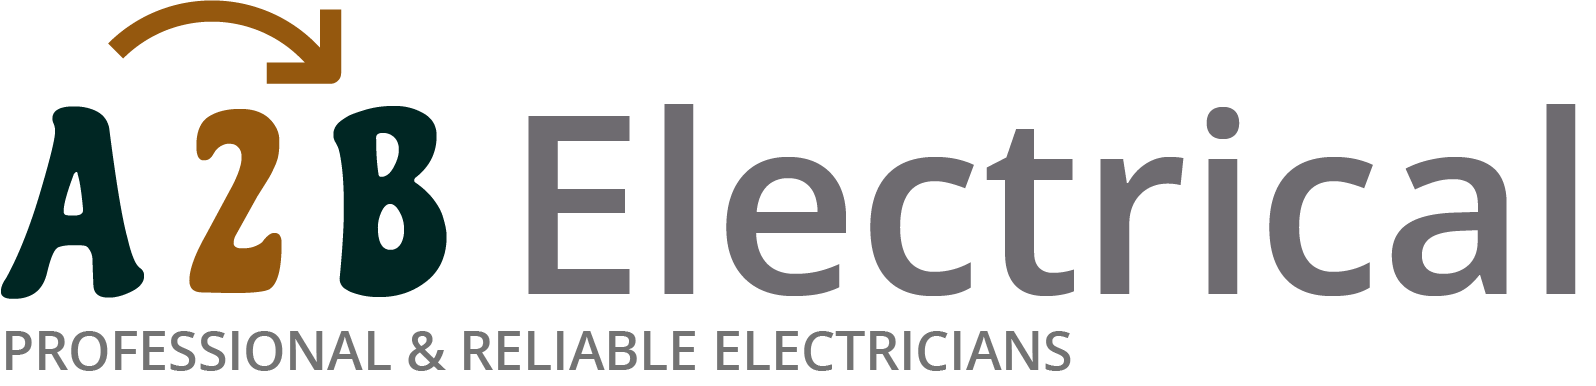 If you have electrical wiring problems in Westbourne, we can provide an electrician to have a look for you.